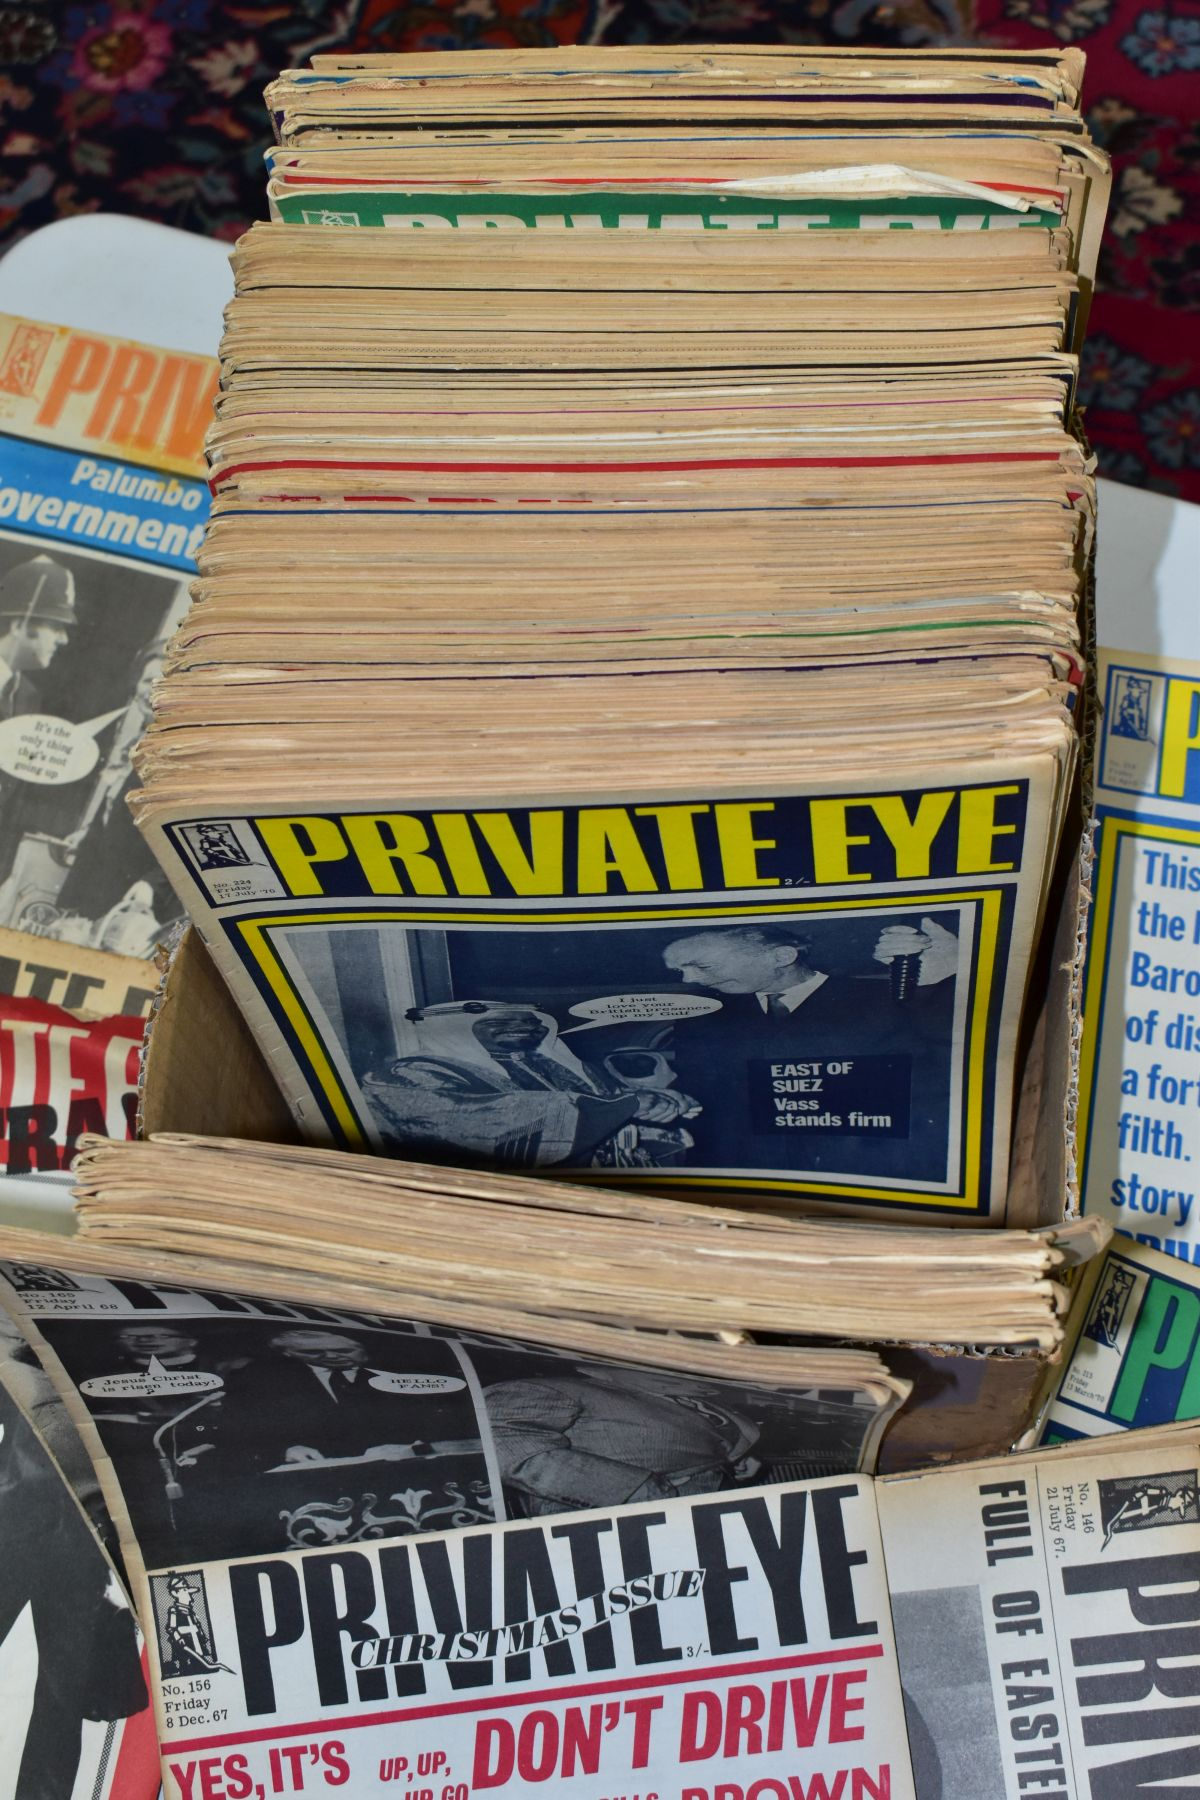 PRIVATE EYE MAGAZINE, a collection of 188 copies of Private Eye, 184 editions from 1966-1974, - Image 2 of 4